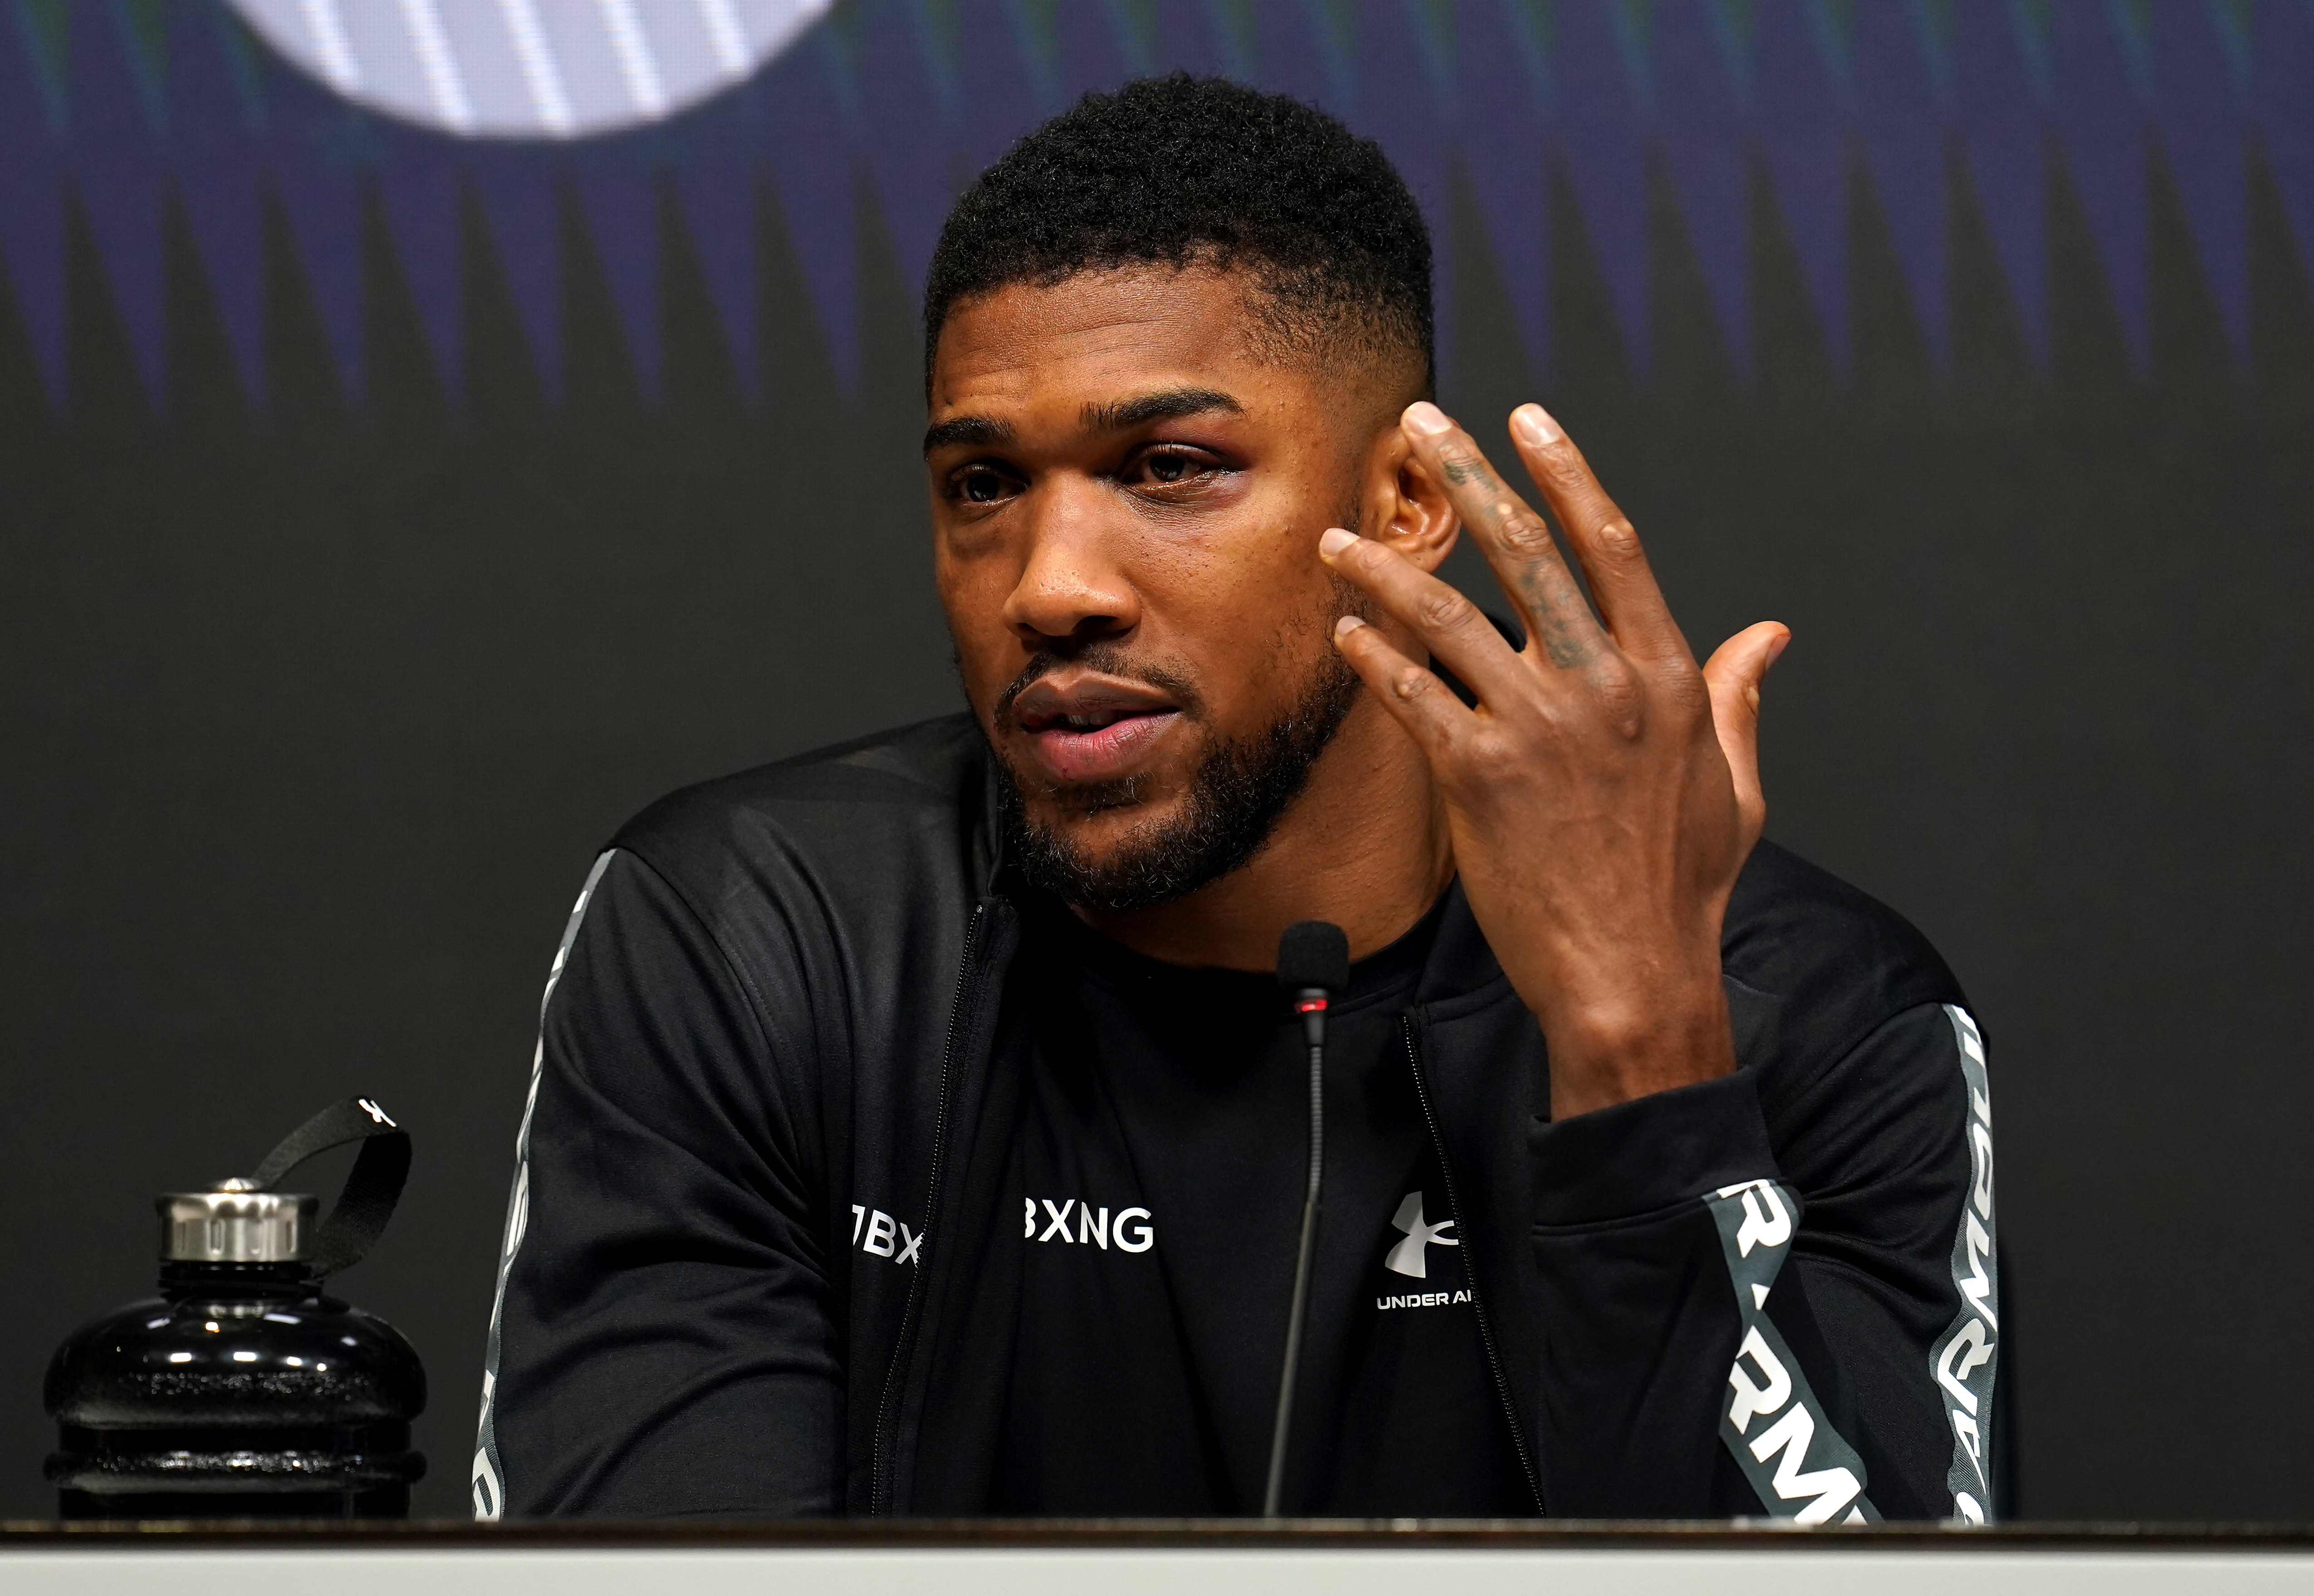 Anthony Joshua after his upset loss to Oleksandr Usyk